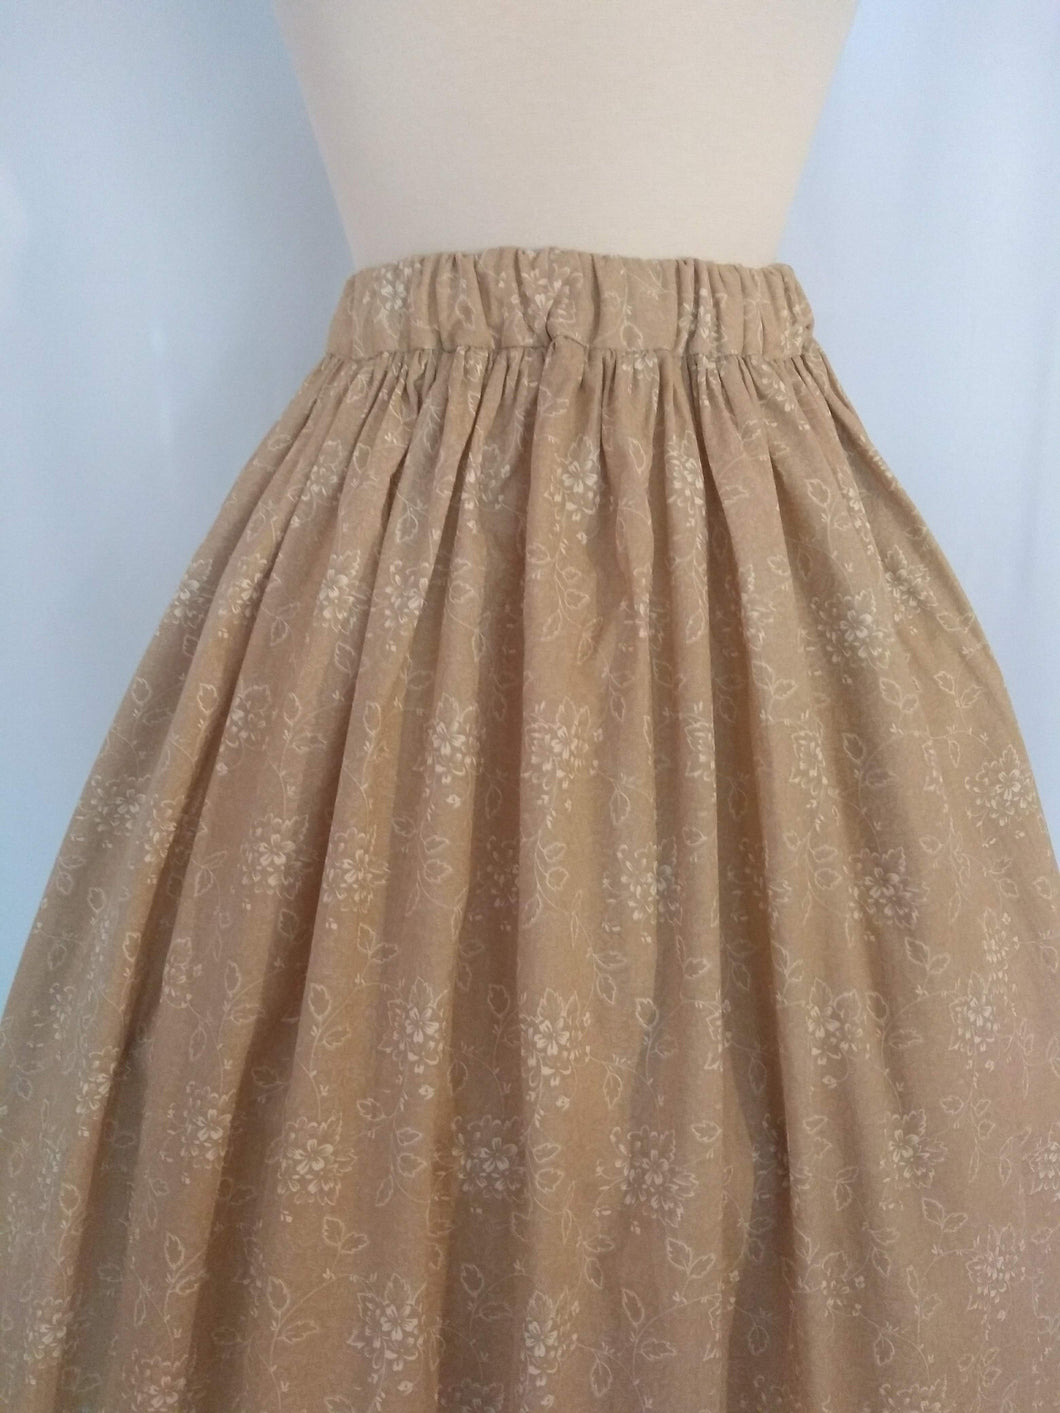 Tan and White Floral Cotton Skirt